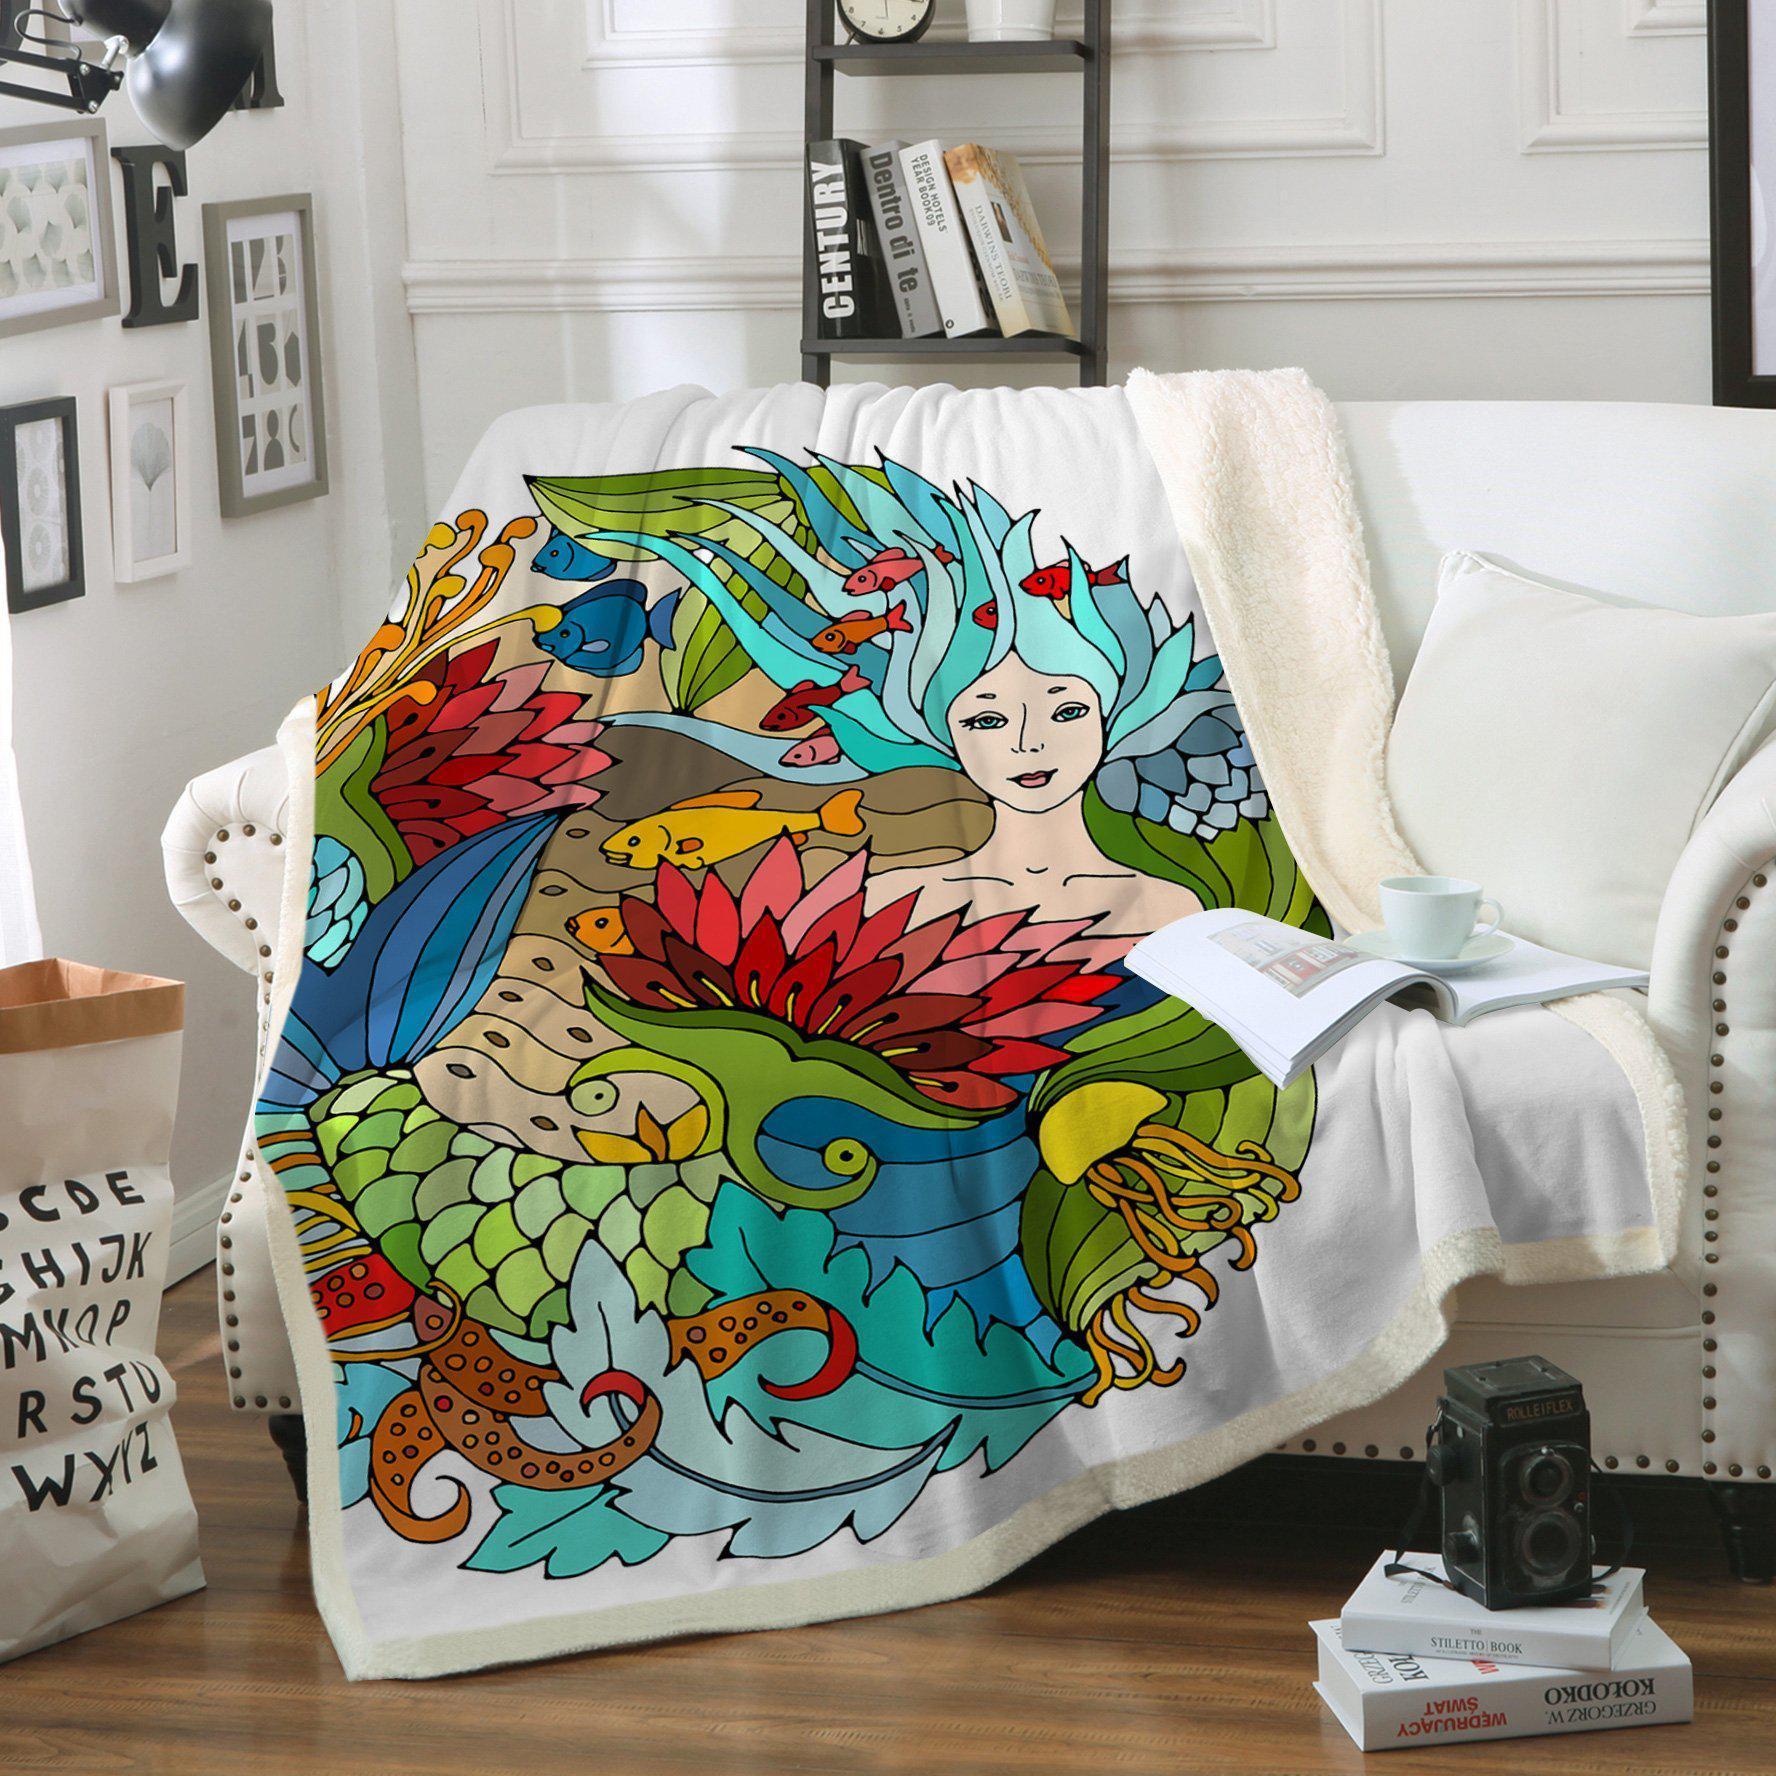 The Happy Mermaid Soft Sherpa Blanket